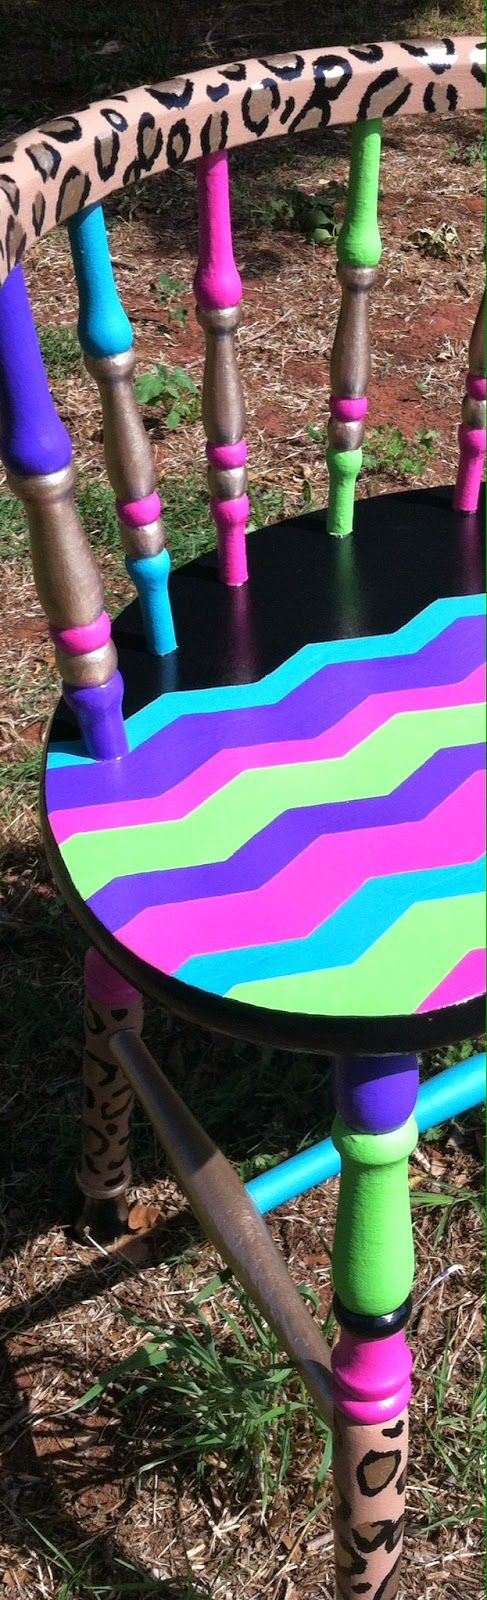 Lime green, pink, turquoise (it looks blue in the pic), purple, black & gold.Chevron & Leopard Print vanity seat